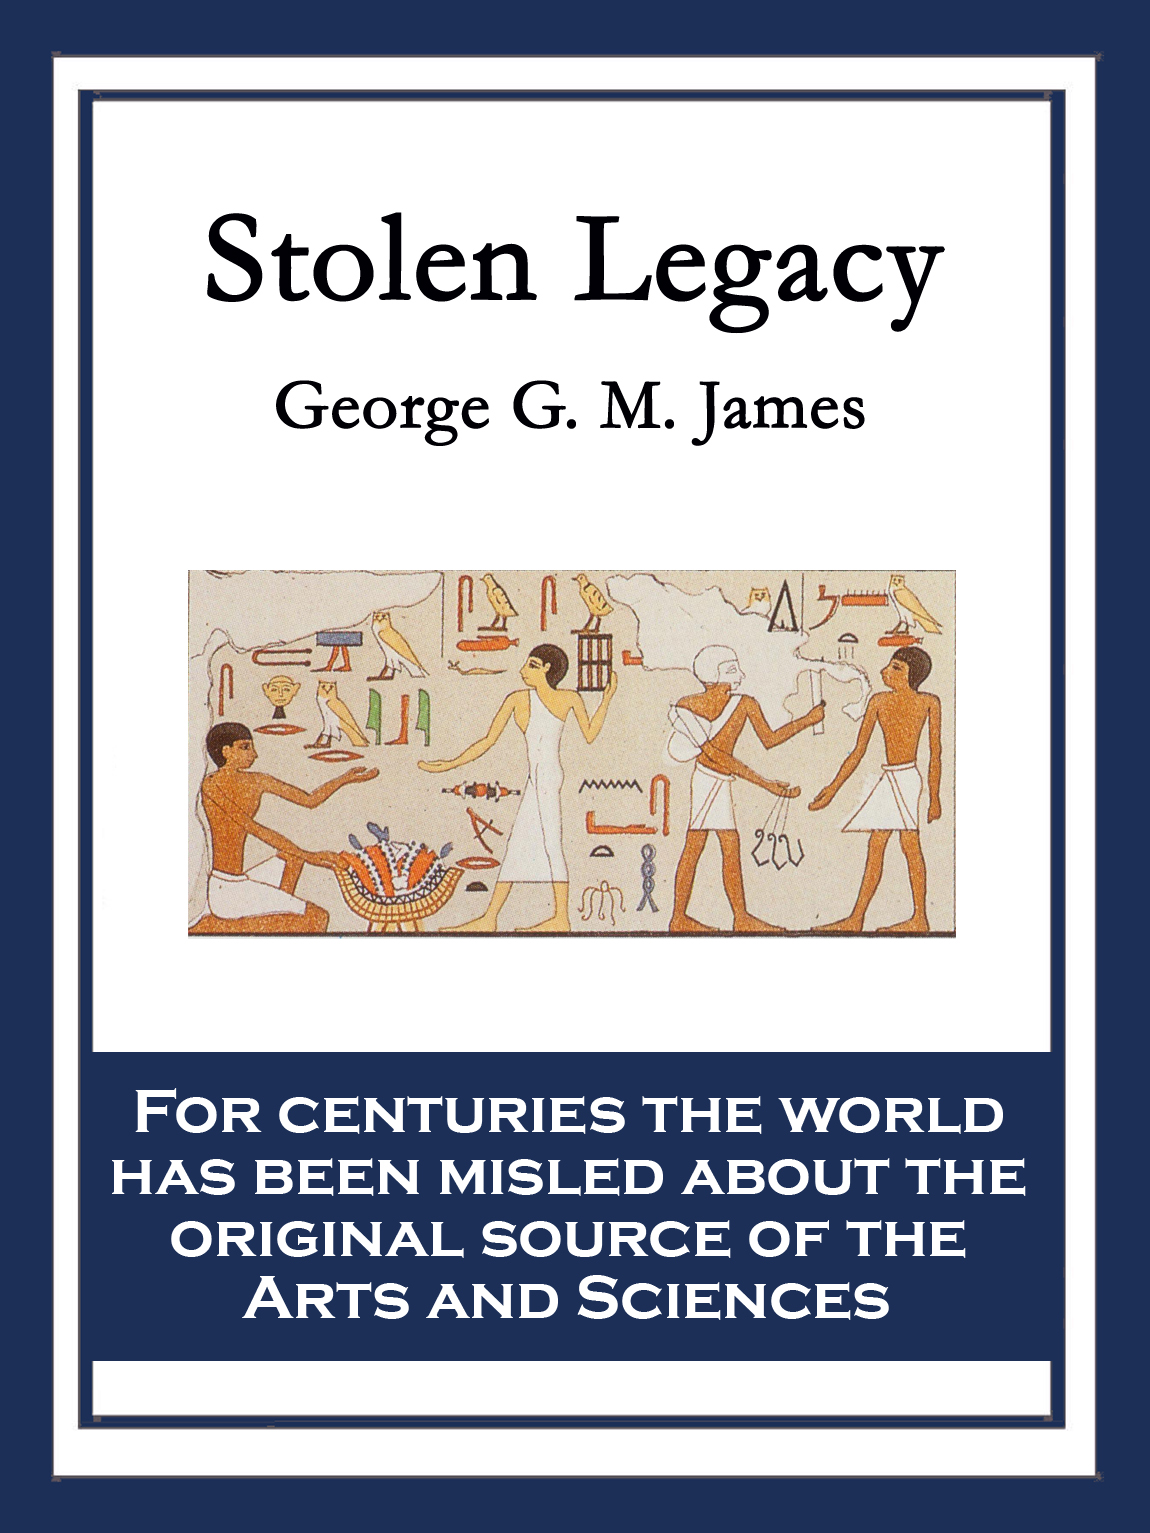 egyptian legacy stolen by greeks essay